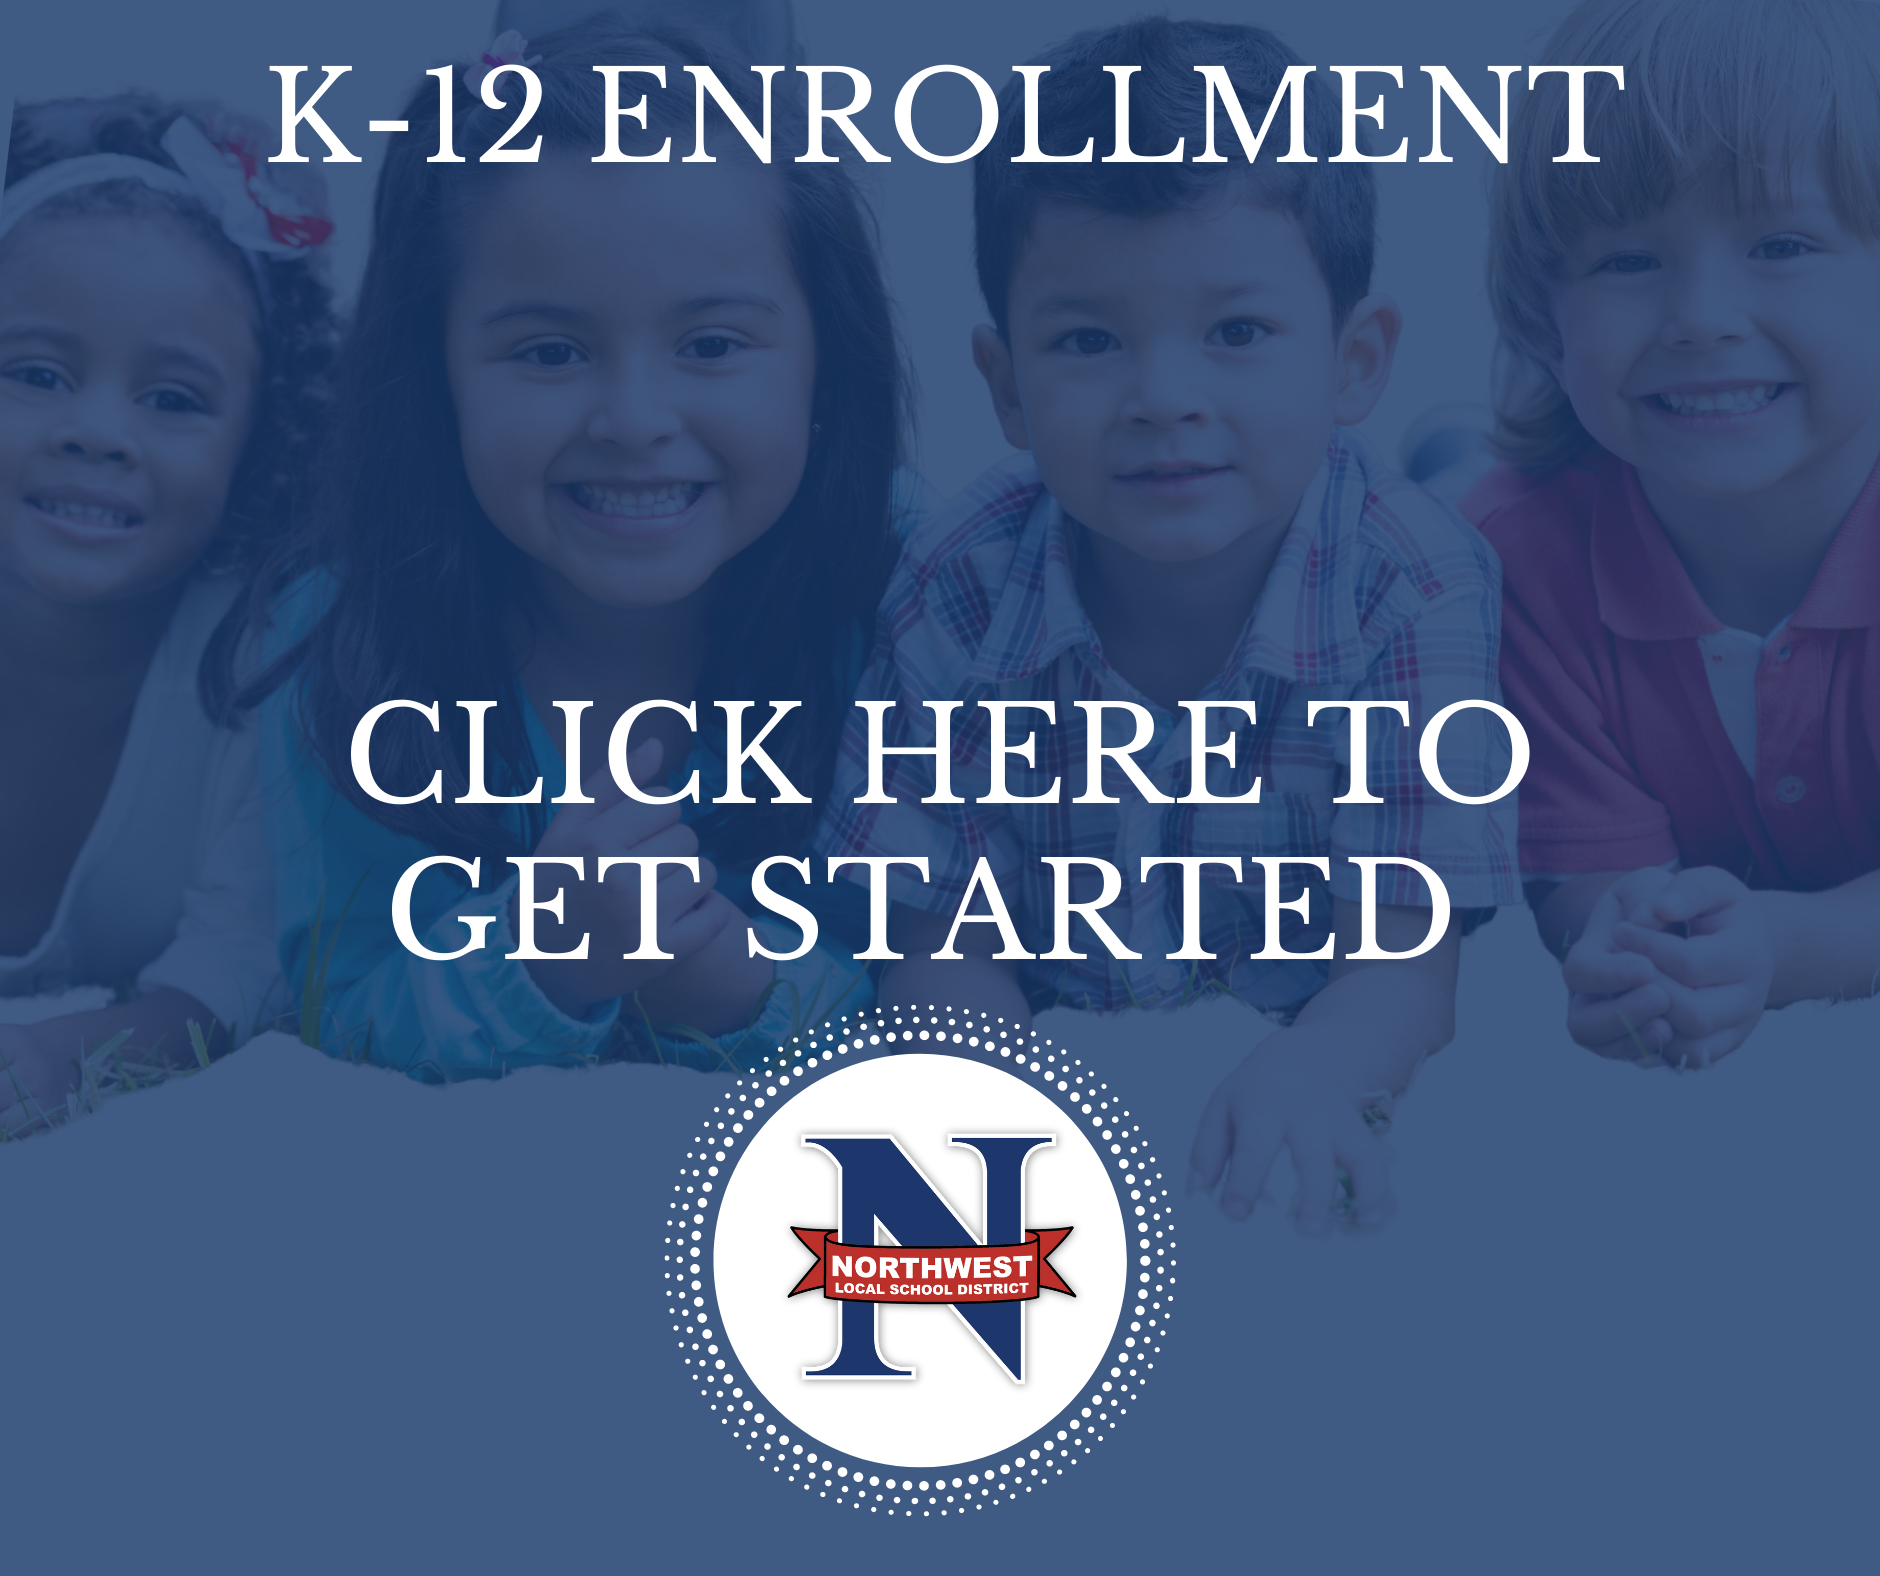 k-12 enrollment click here to get started, Northwest Local School District